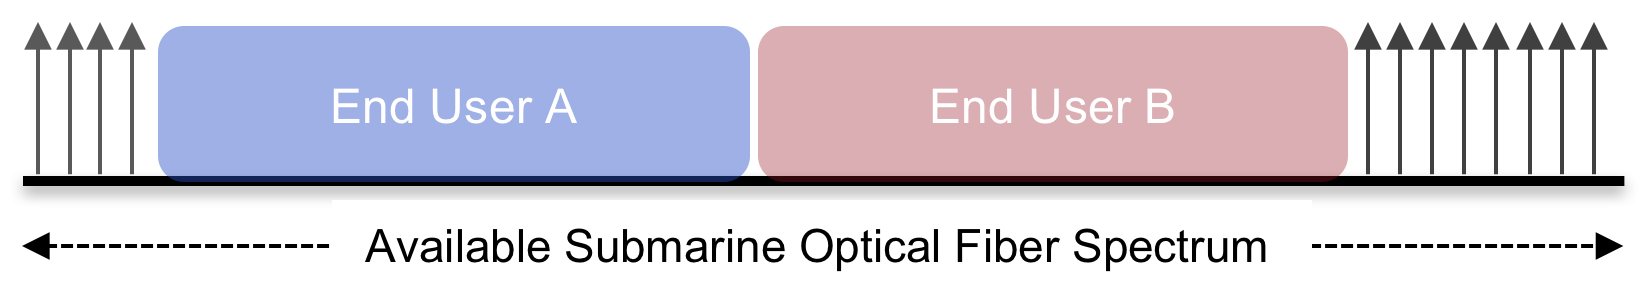 Virtualizing Submarine Cable Fibers via Spectrum Sharing